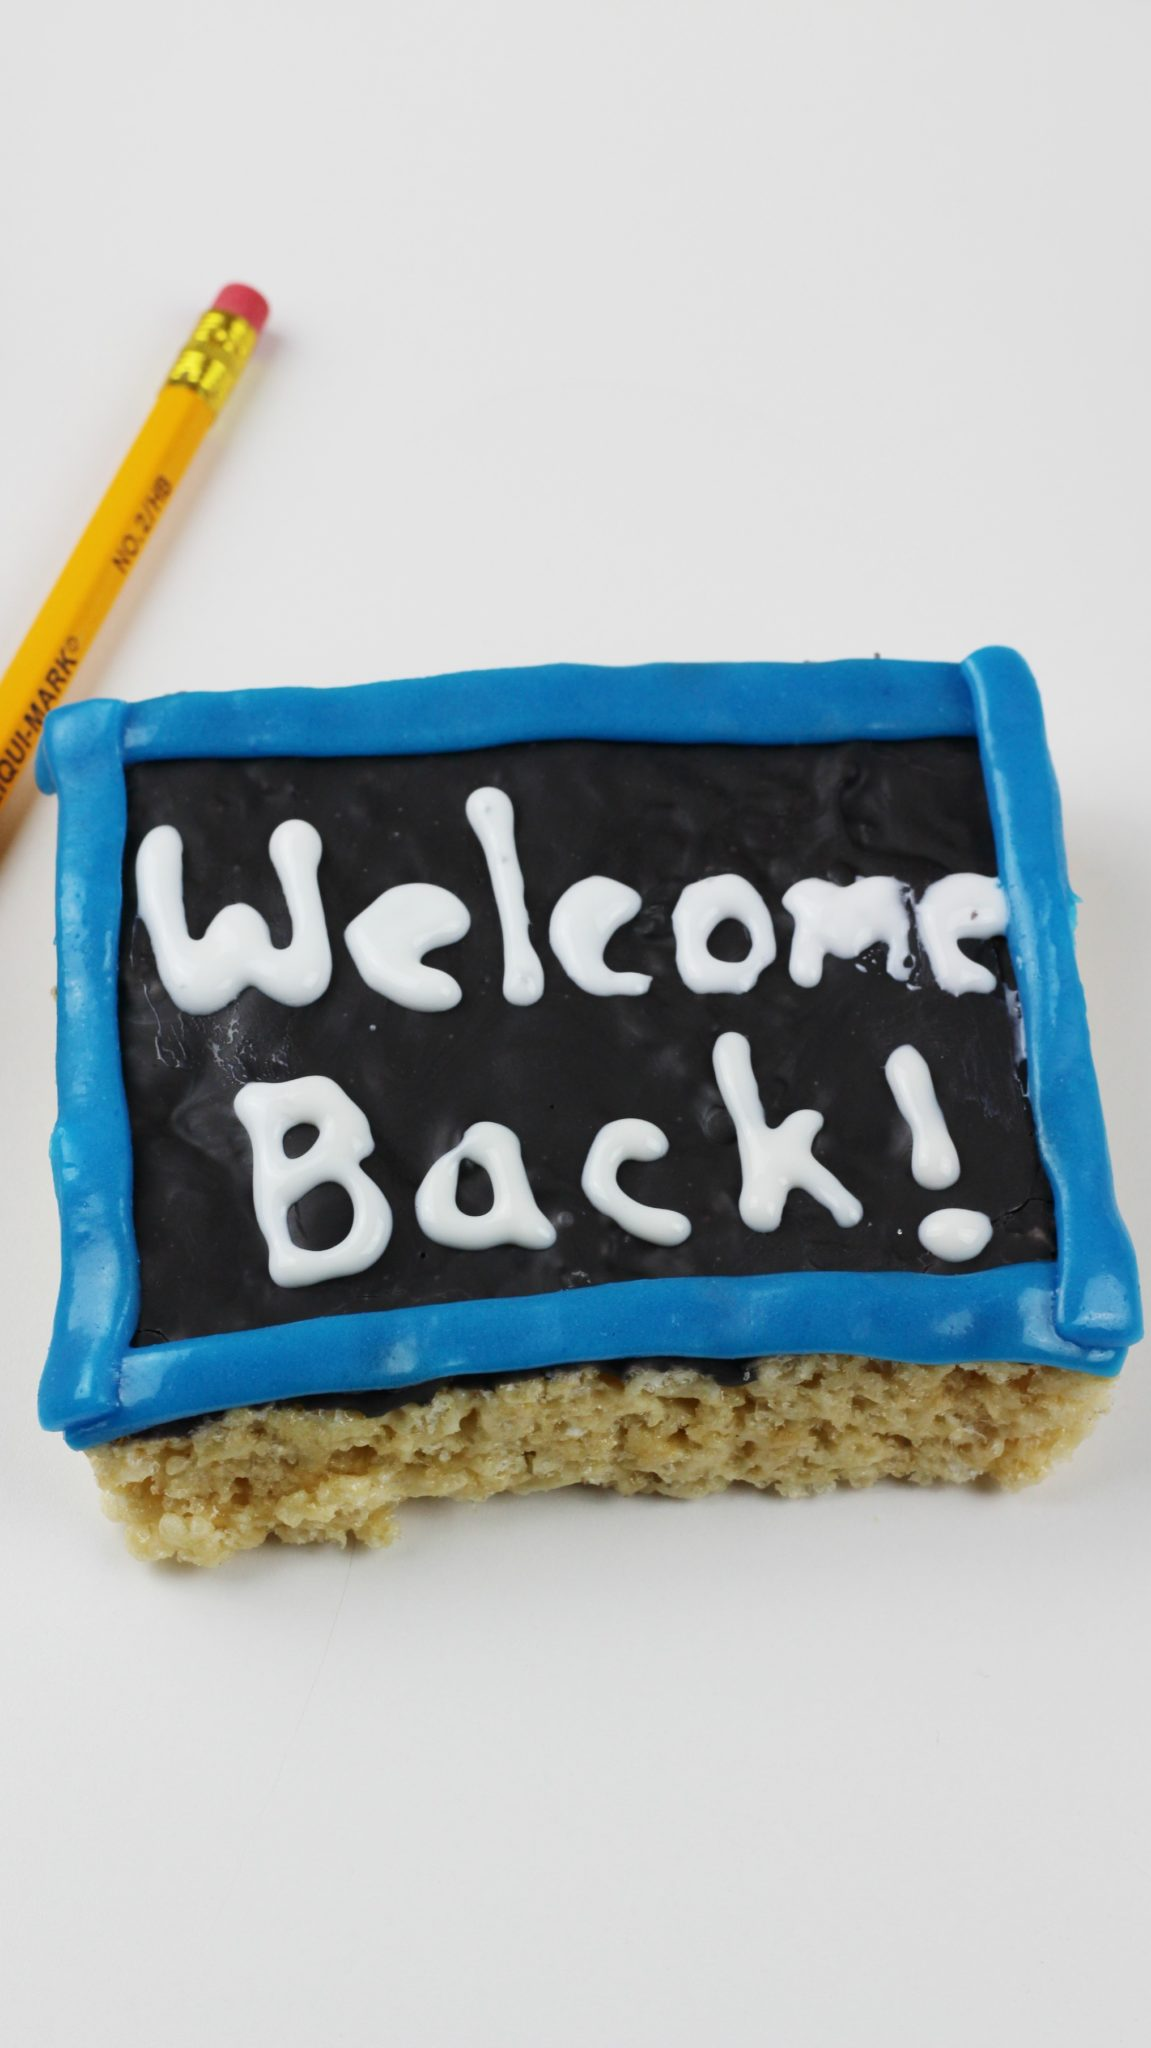 First Day of School Snack – Chalkboard Rice Krispies